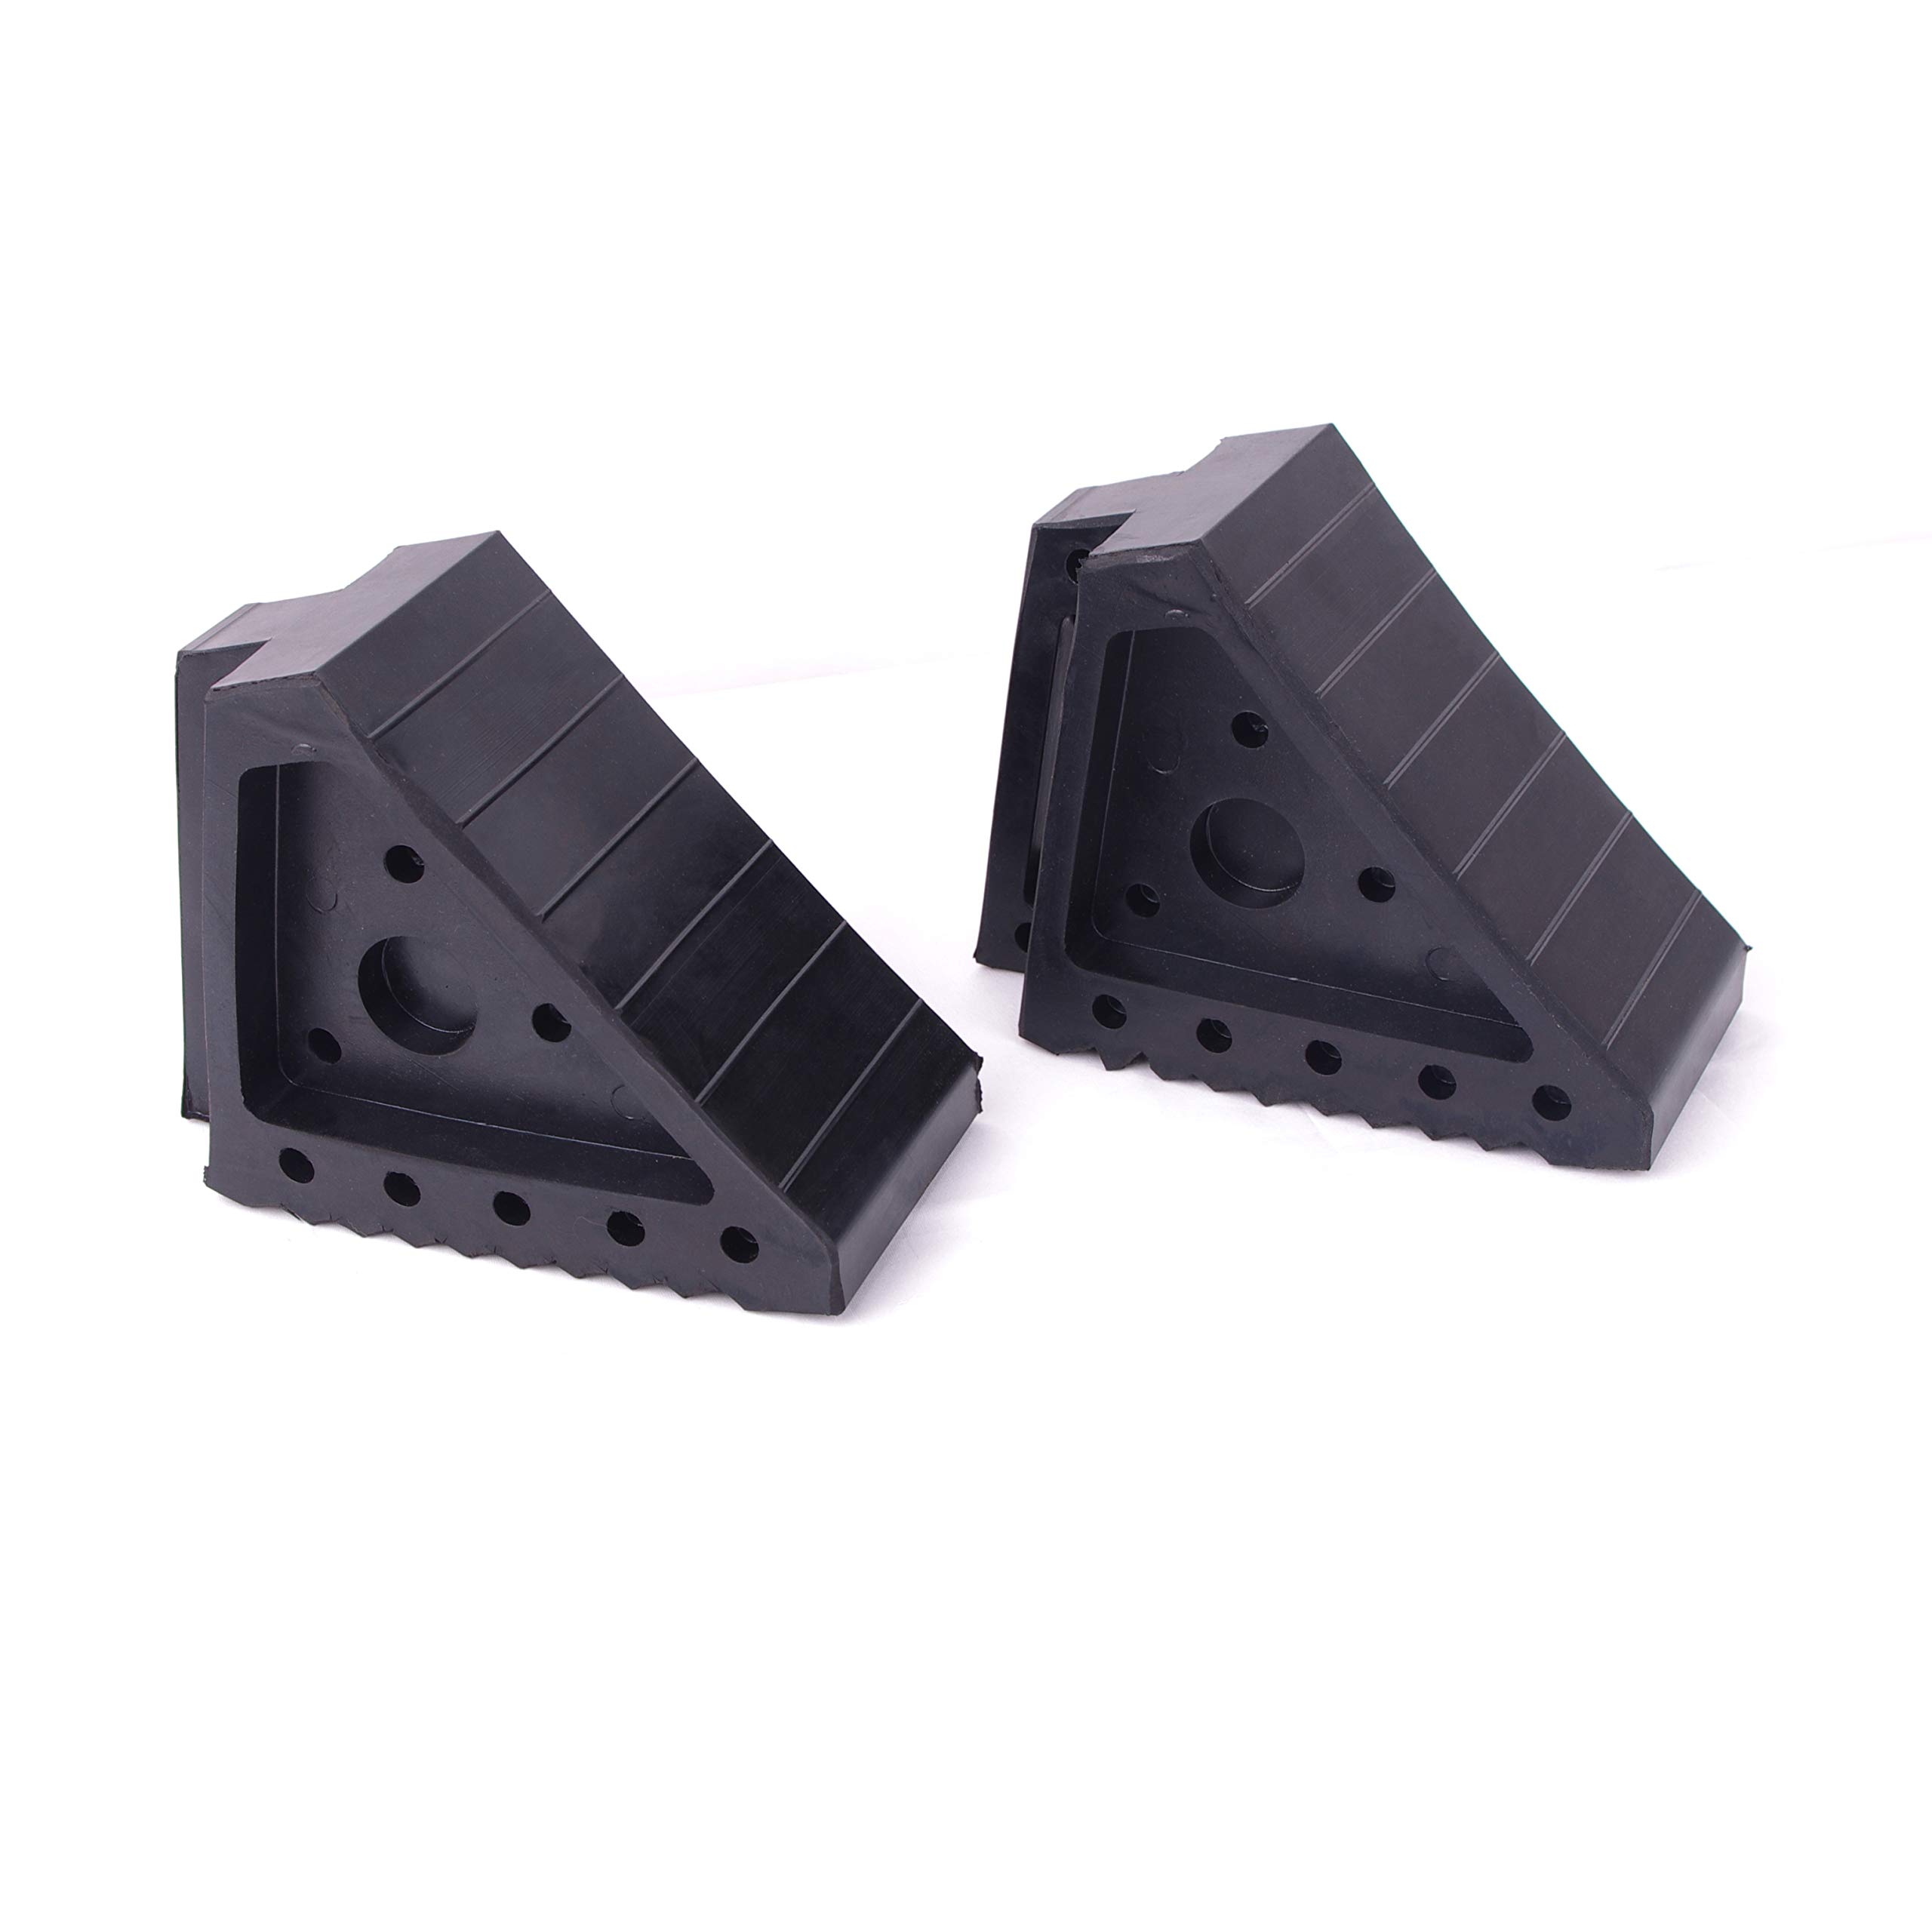 HIGOOD Solid Rubber Wheel Chock with Handle for The Car, Strong and Durable,8'' Length, 4'' Width, 6'' Height - Pack of 2